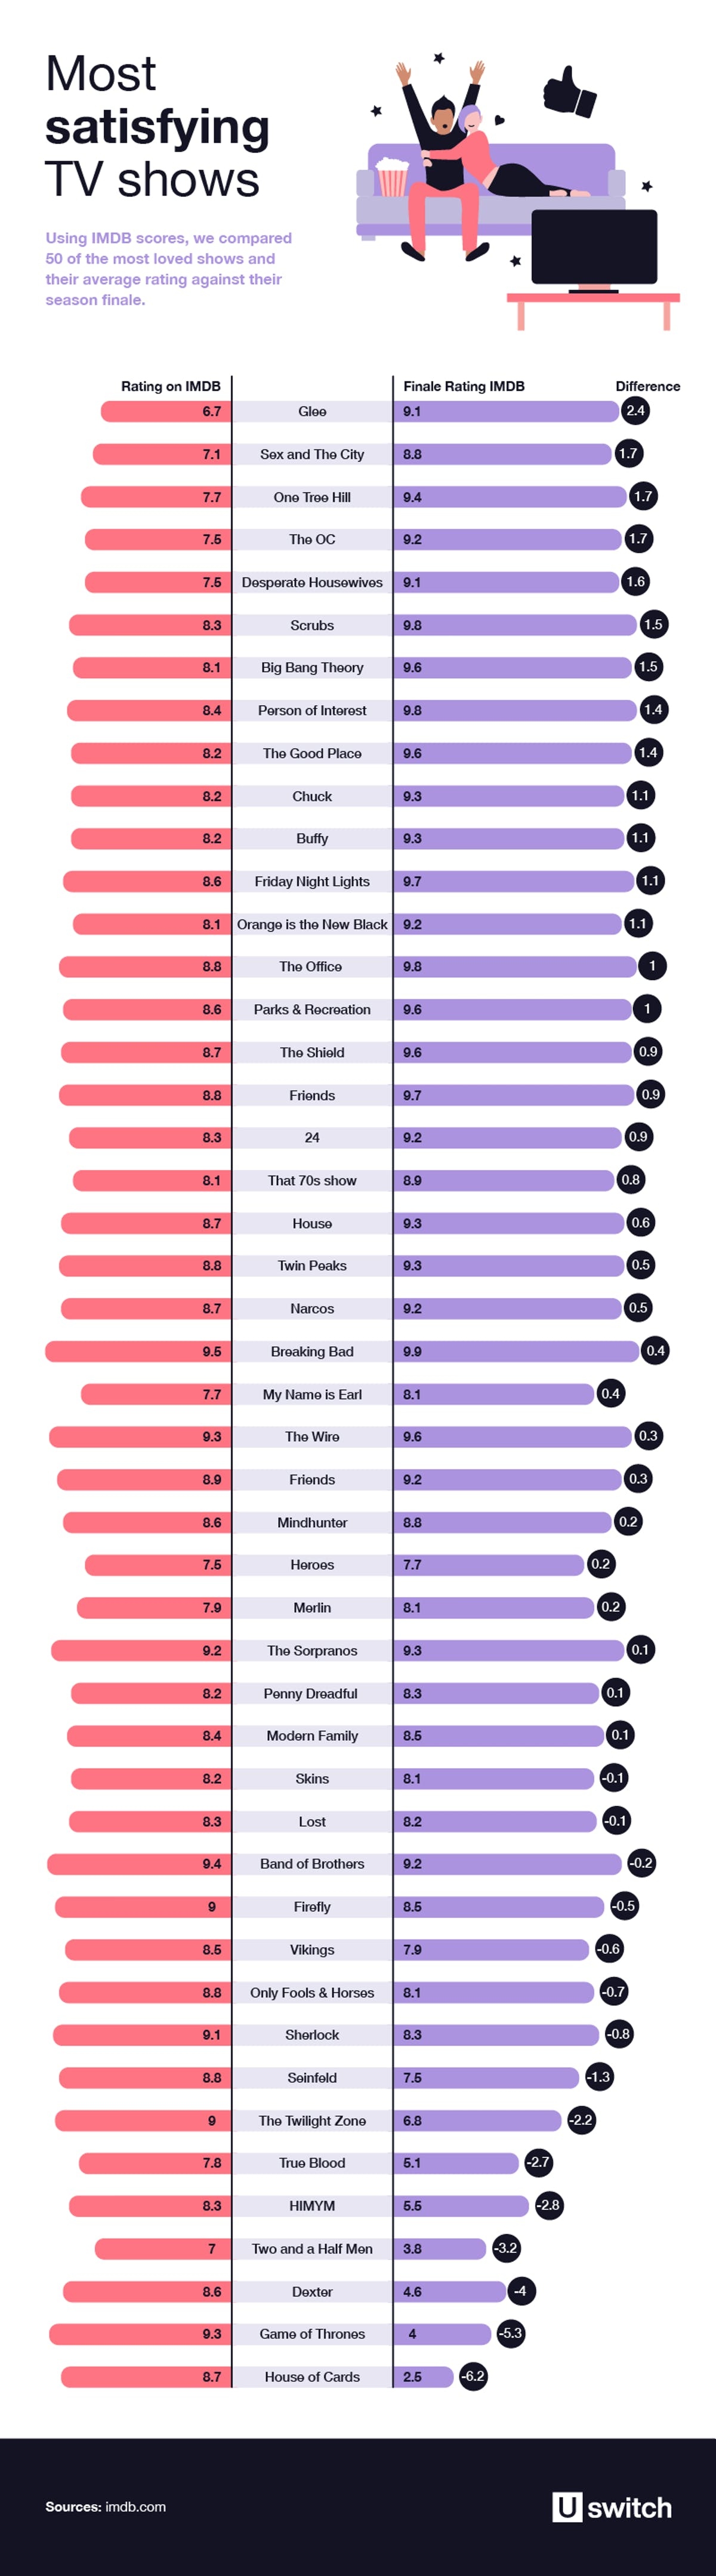 Most satisfying TV shows ranked